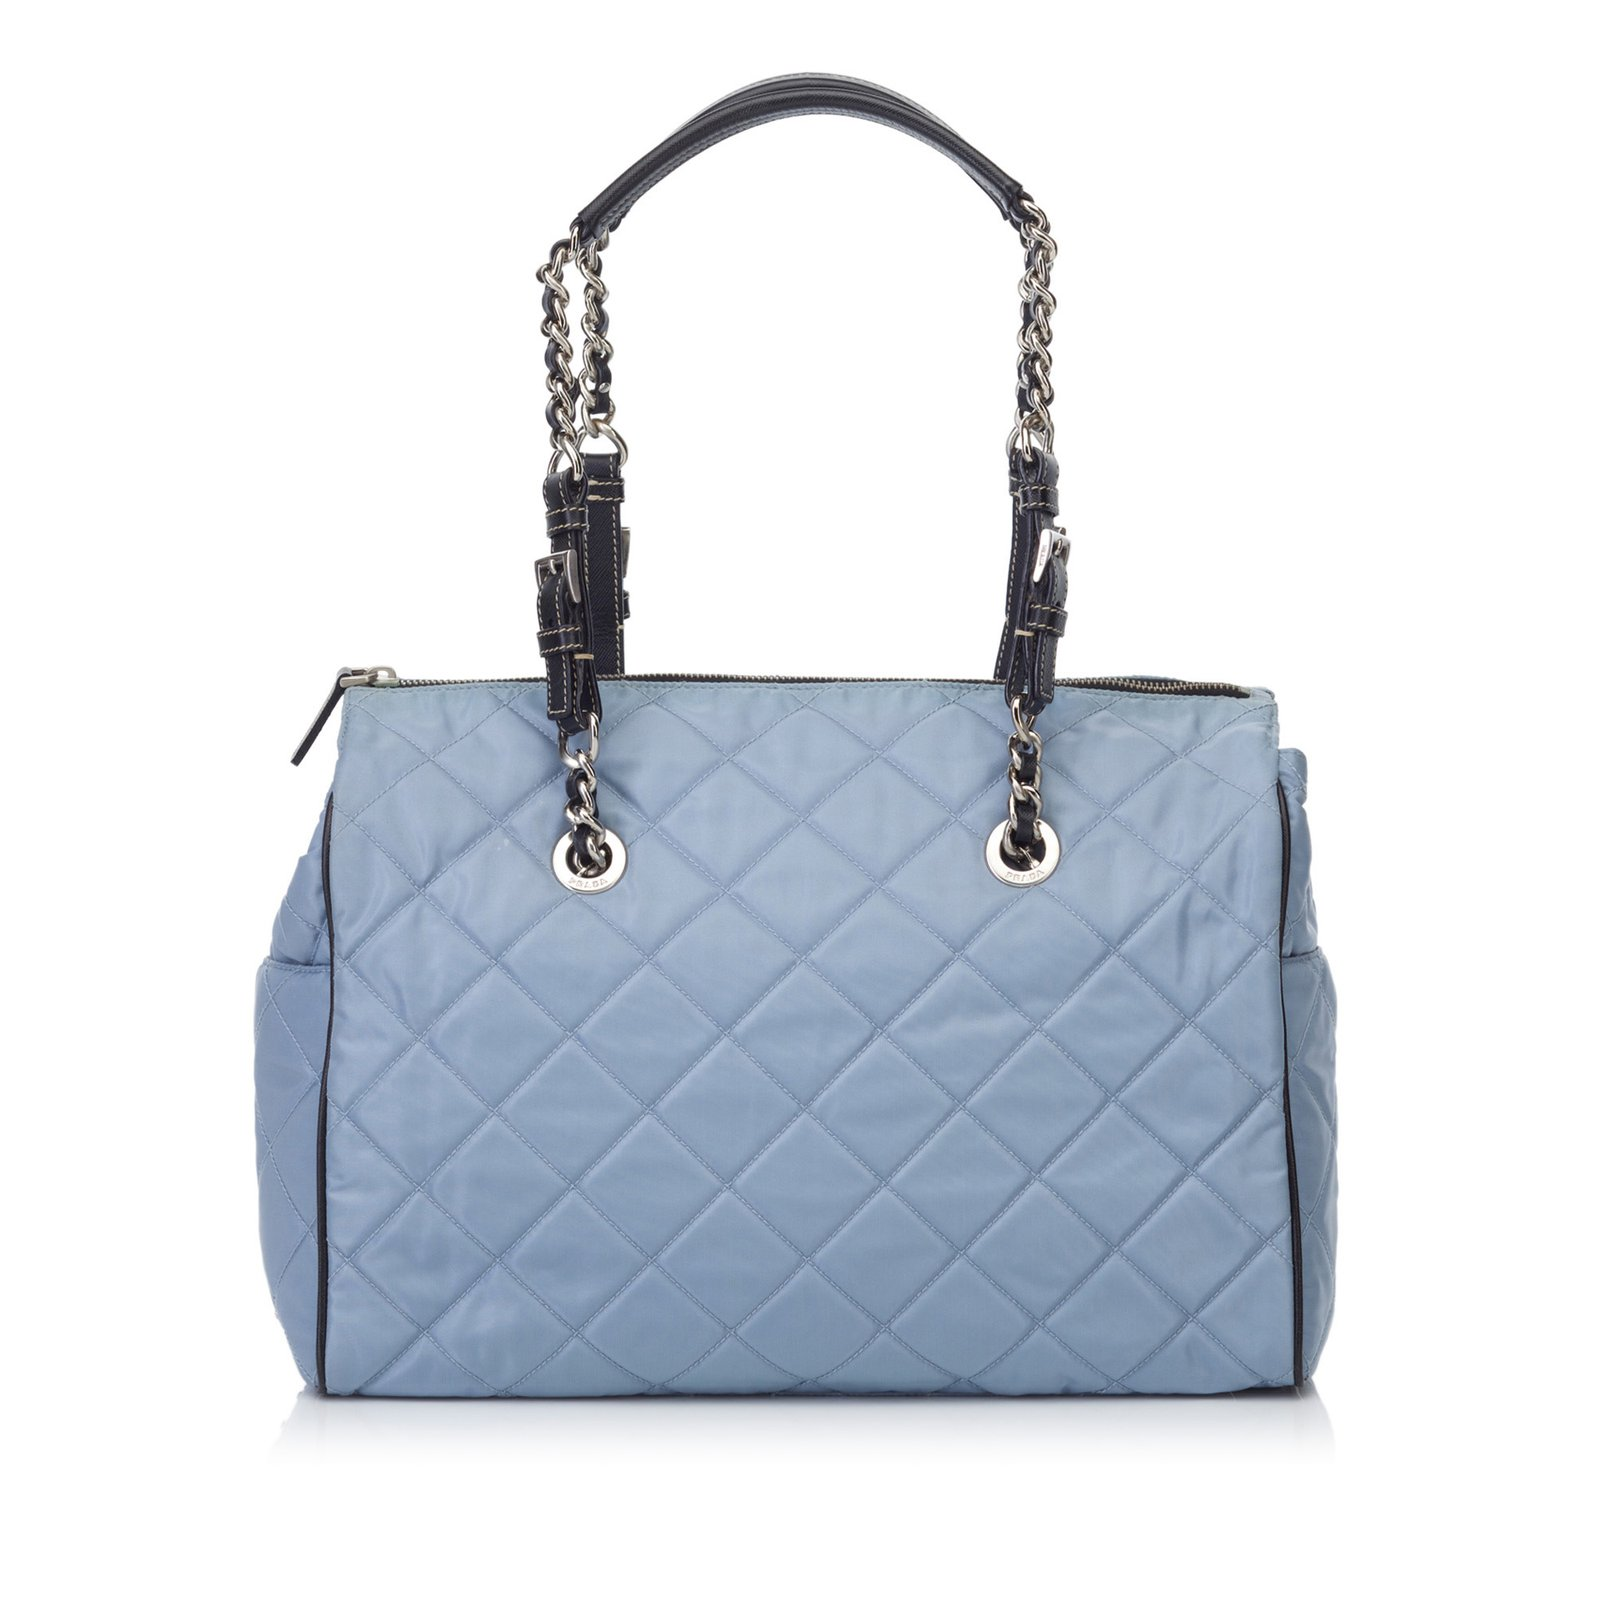 9bdbb118cfd2 ... sale prada quilted nylon shoulder bag handbags leatherothernyloncloth  blue light e03a3 74051